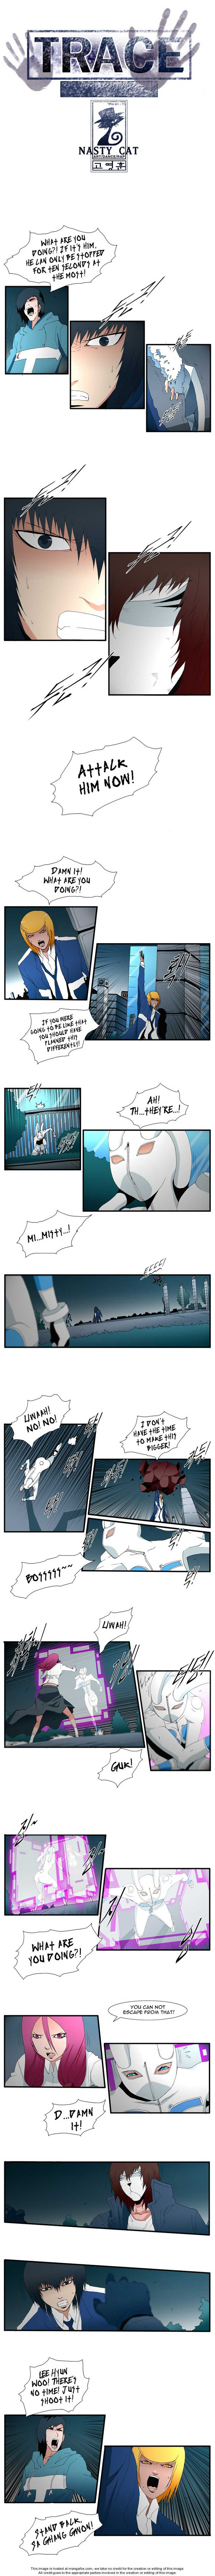 Trace 33 Page 1